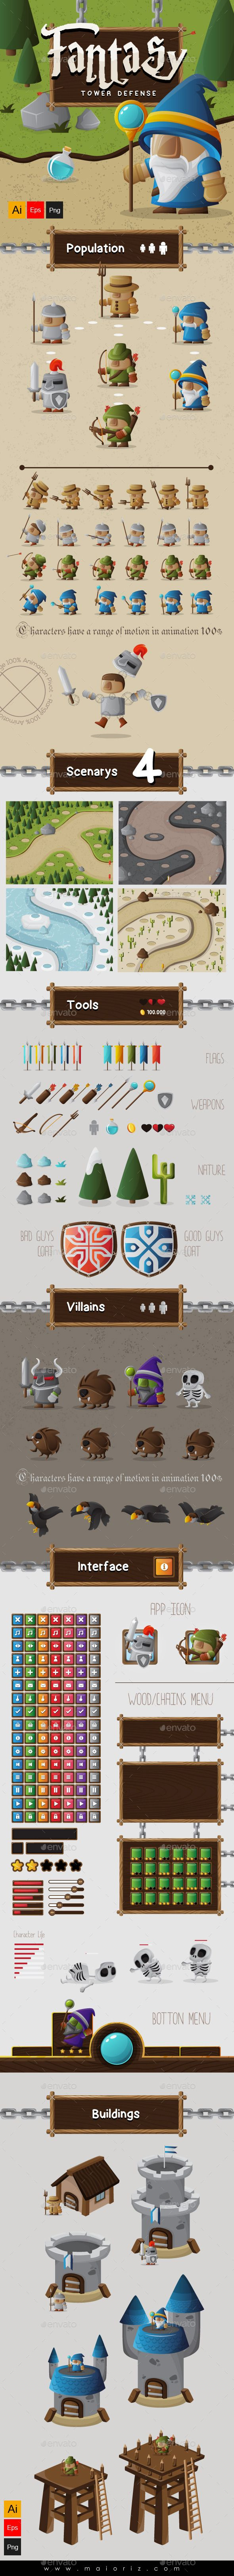 Fantasy Tower Defense Assets $29 Fantasy Game Assets. Suitable COMPLET game. Perfect for games or video animations. CONTENTS: -Characters Evolution. -Villains Characters. -4 maps -Game interface. -Tools / Elements / Weapons. -Buildings Evolution. FEATURES 100% Vector (AI + EPS 10). NOTES Not include fonts -rgb color Mode.